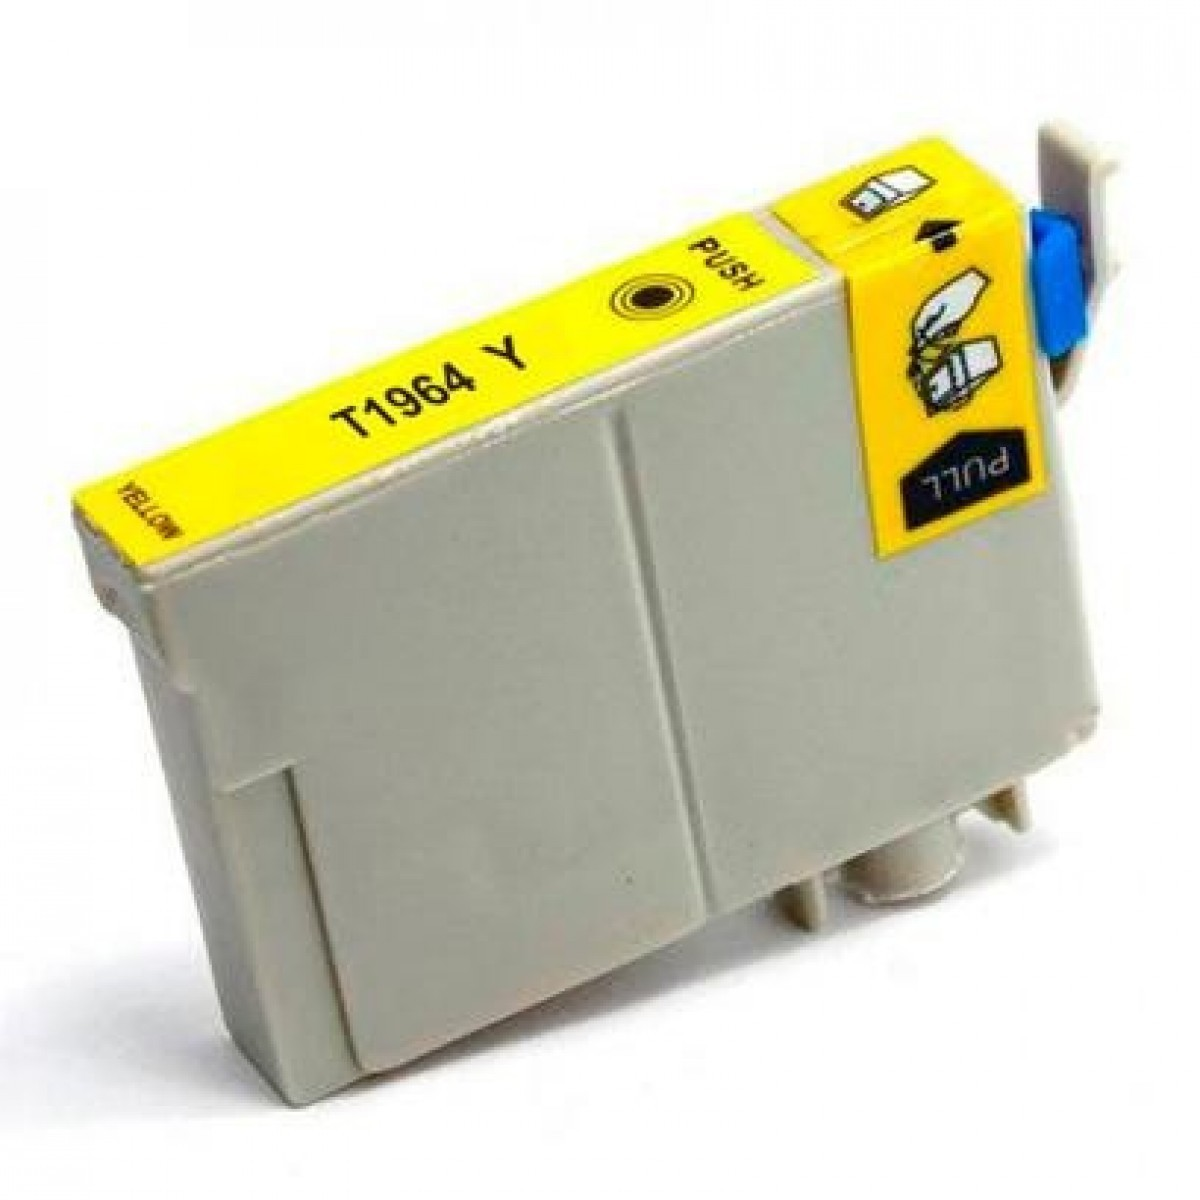 EPSON TO 1964 1944 YELLOW XP101, XP201, XP214, XP401, XP411, XP204, WForce 2532 2512 xp 20